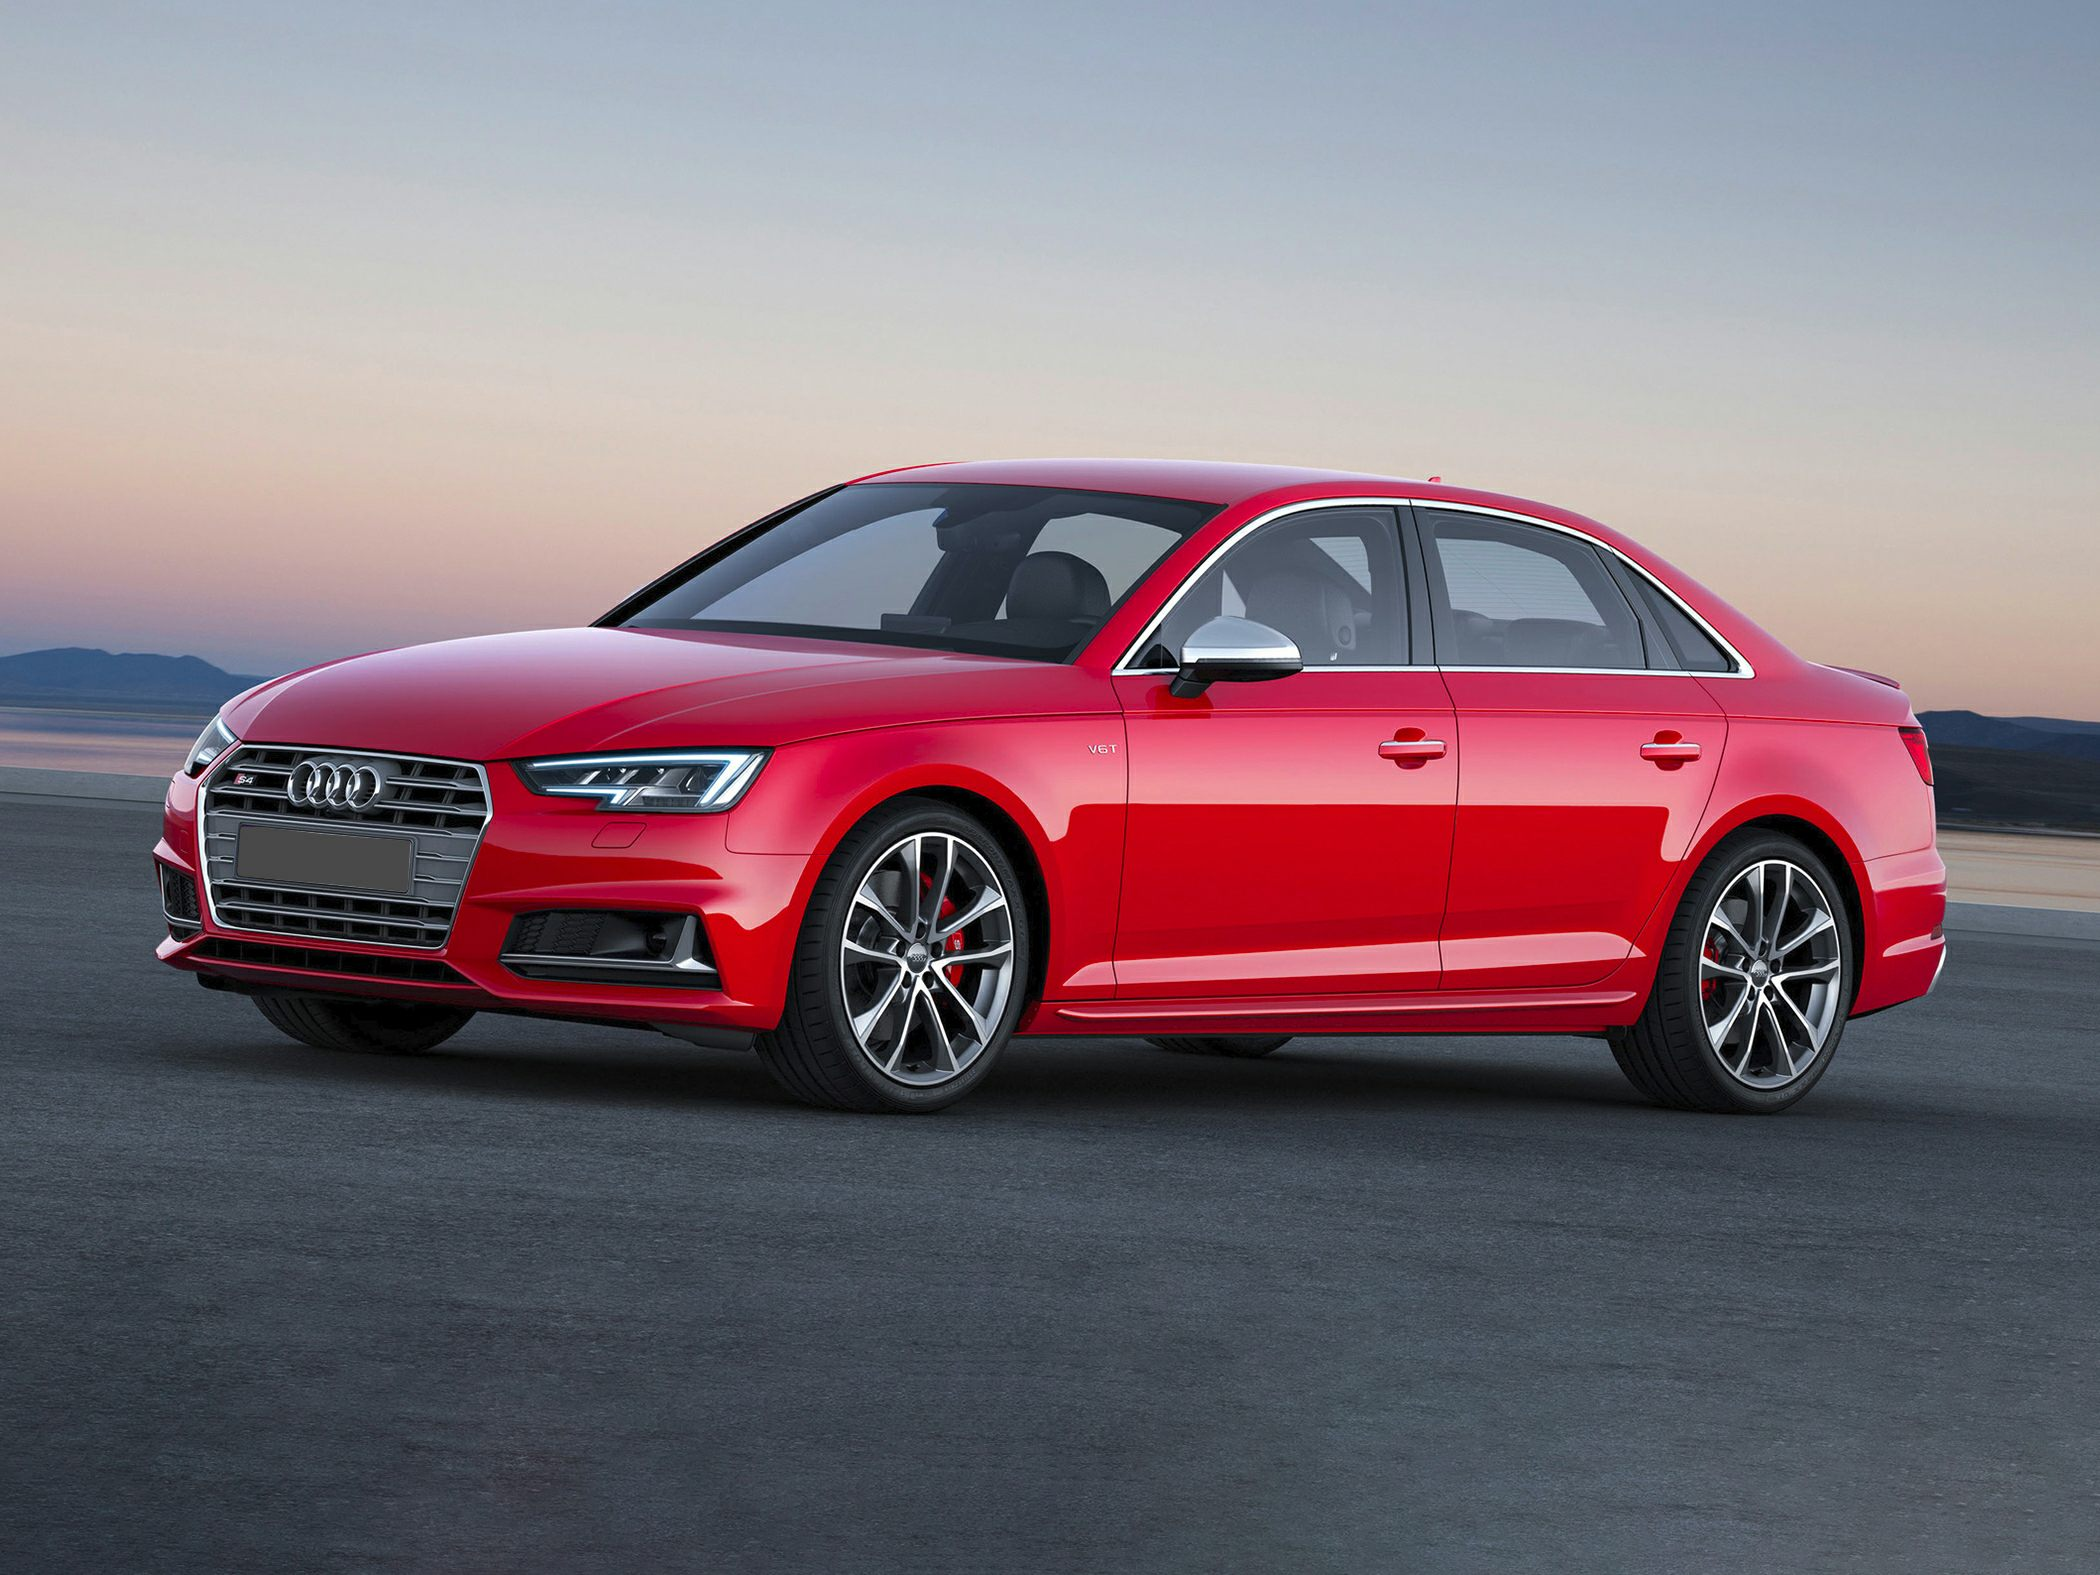 2018 Audi S4 Styles Features Highlights